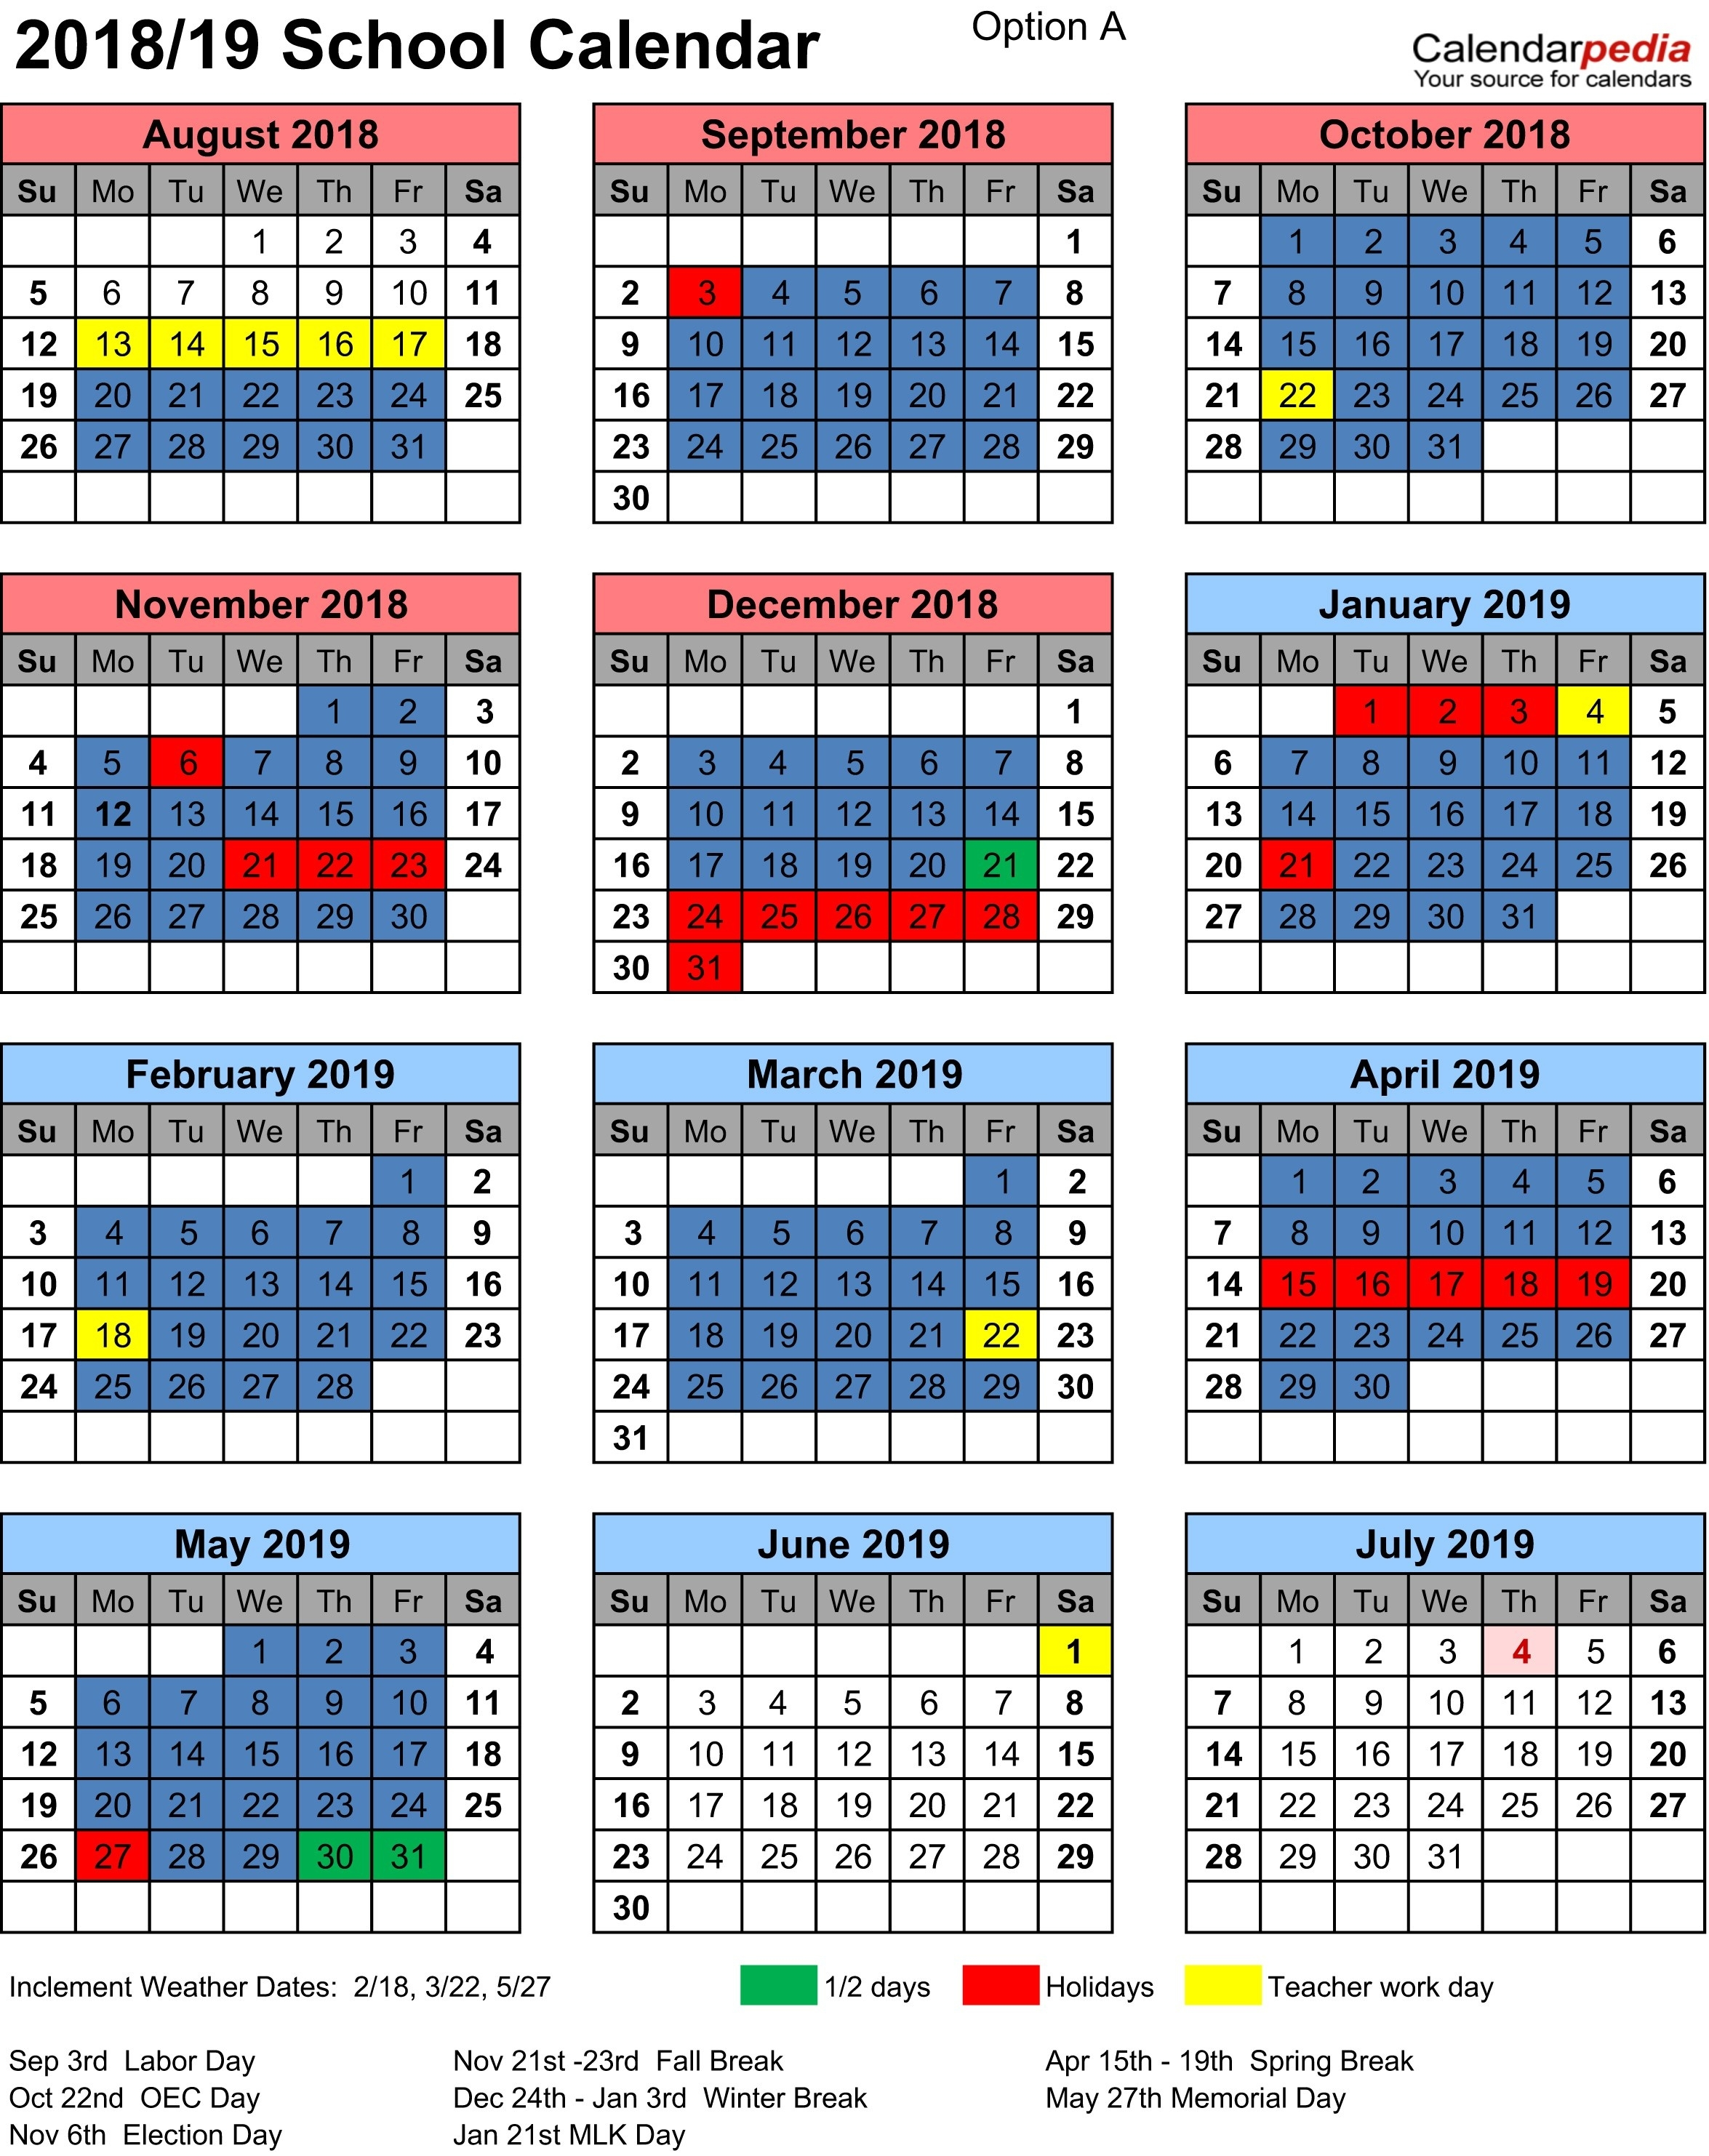 Denton Isd Calendar 2018 Download For No Charge – Calendaro.download_School Calendar Denton Isd